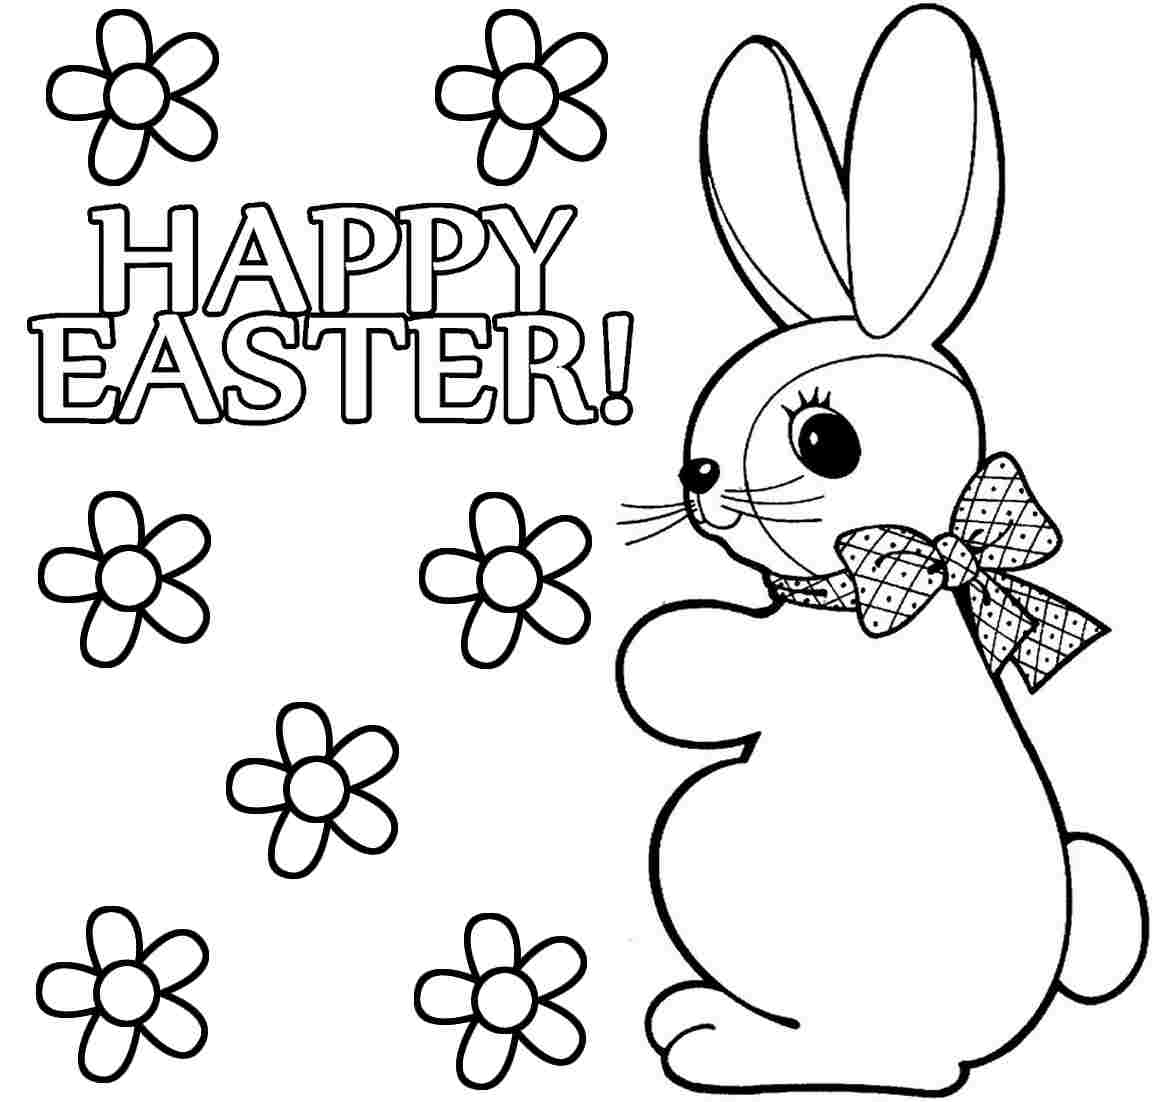 1152x1102 Easter Bunny Coloring Pages